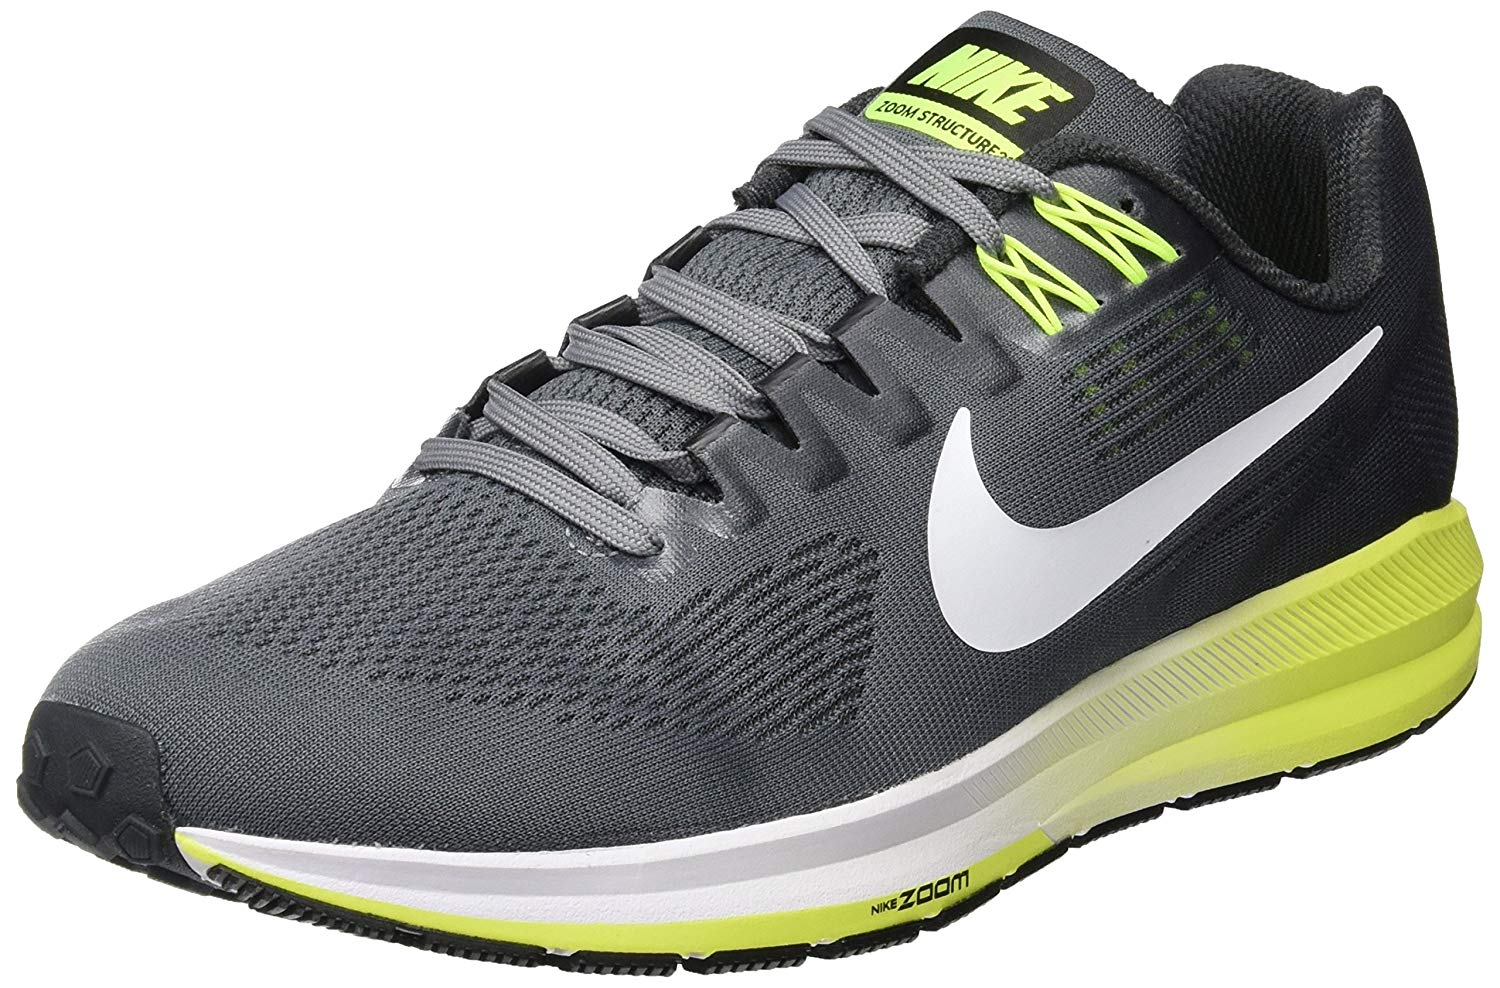 192d0a95c9dd1 Nike Air Zoom Structure 21 Reviewed for Performance in 2019